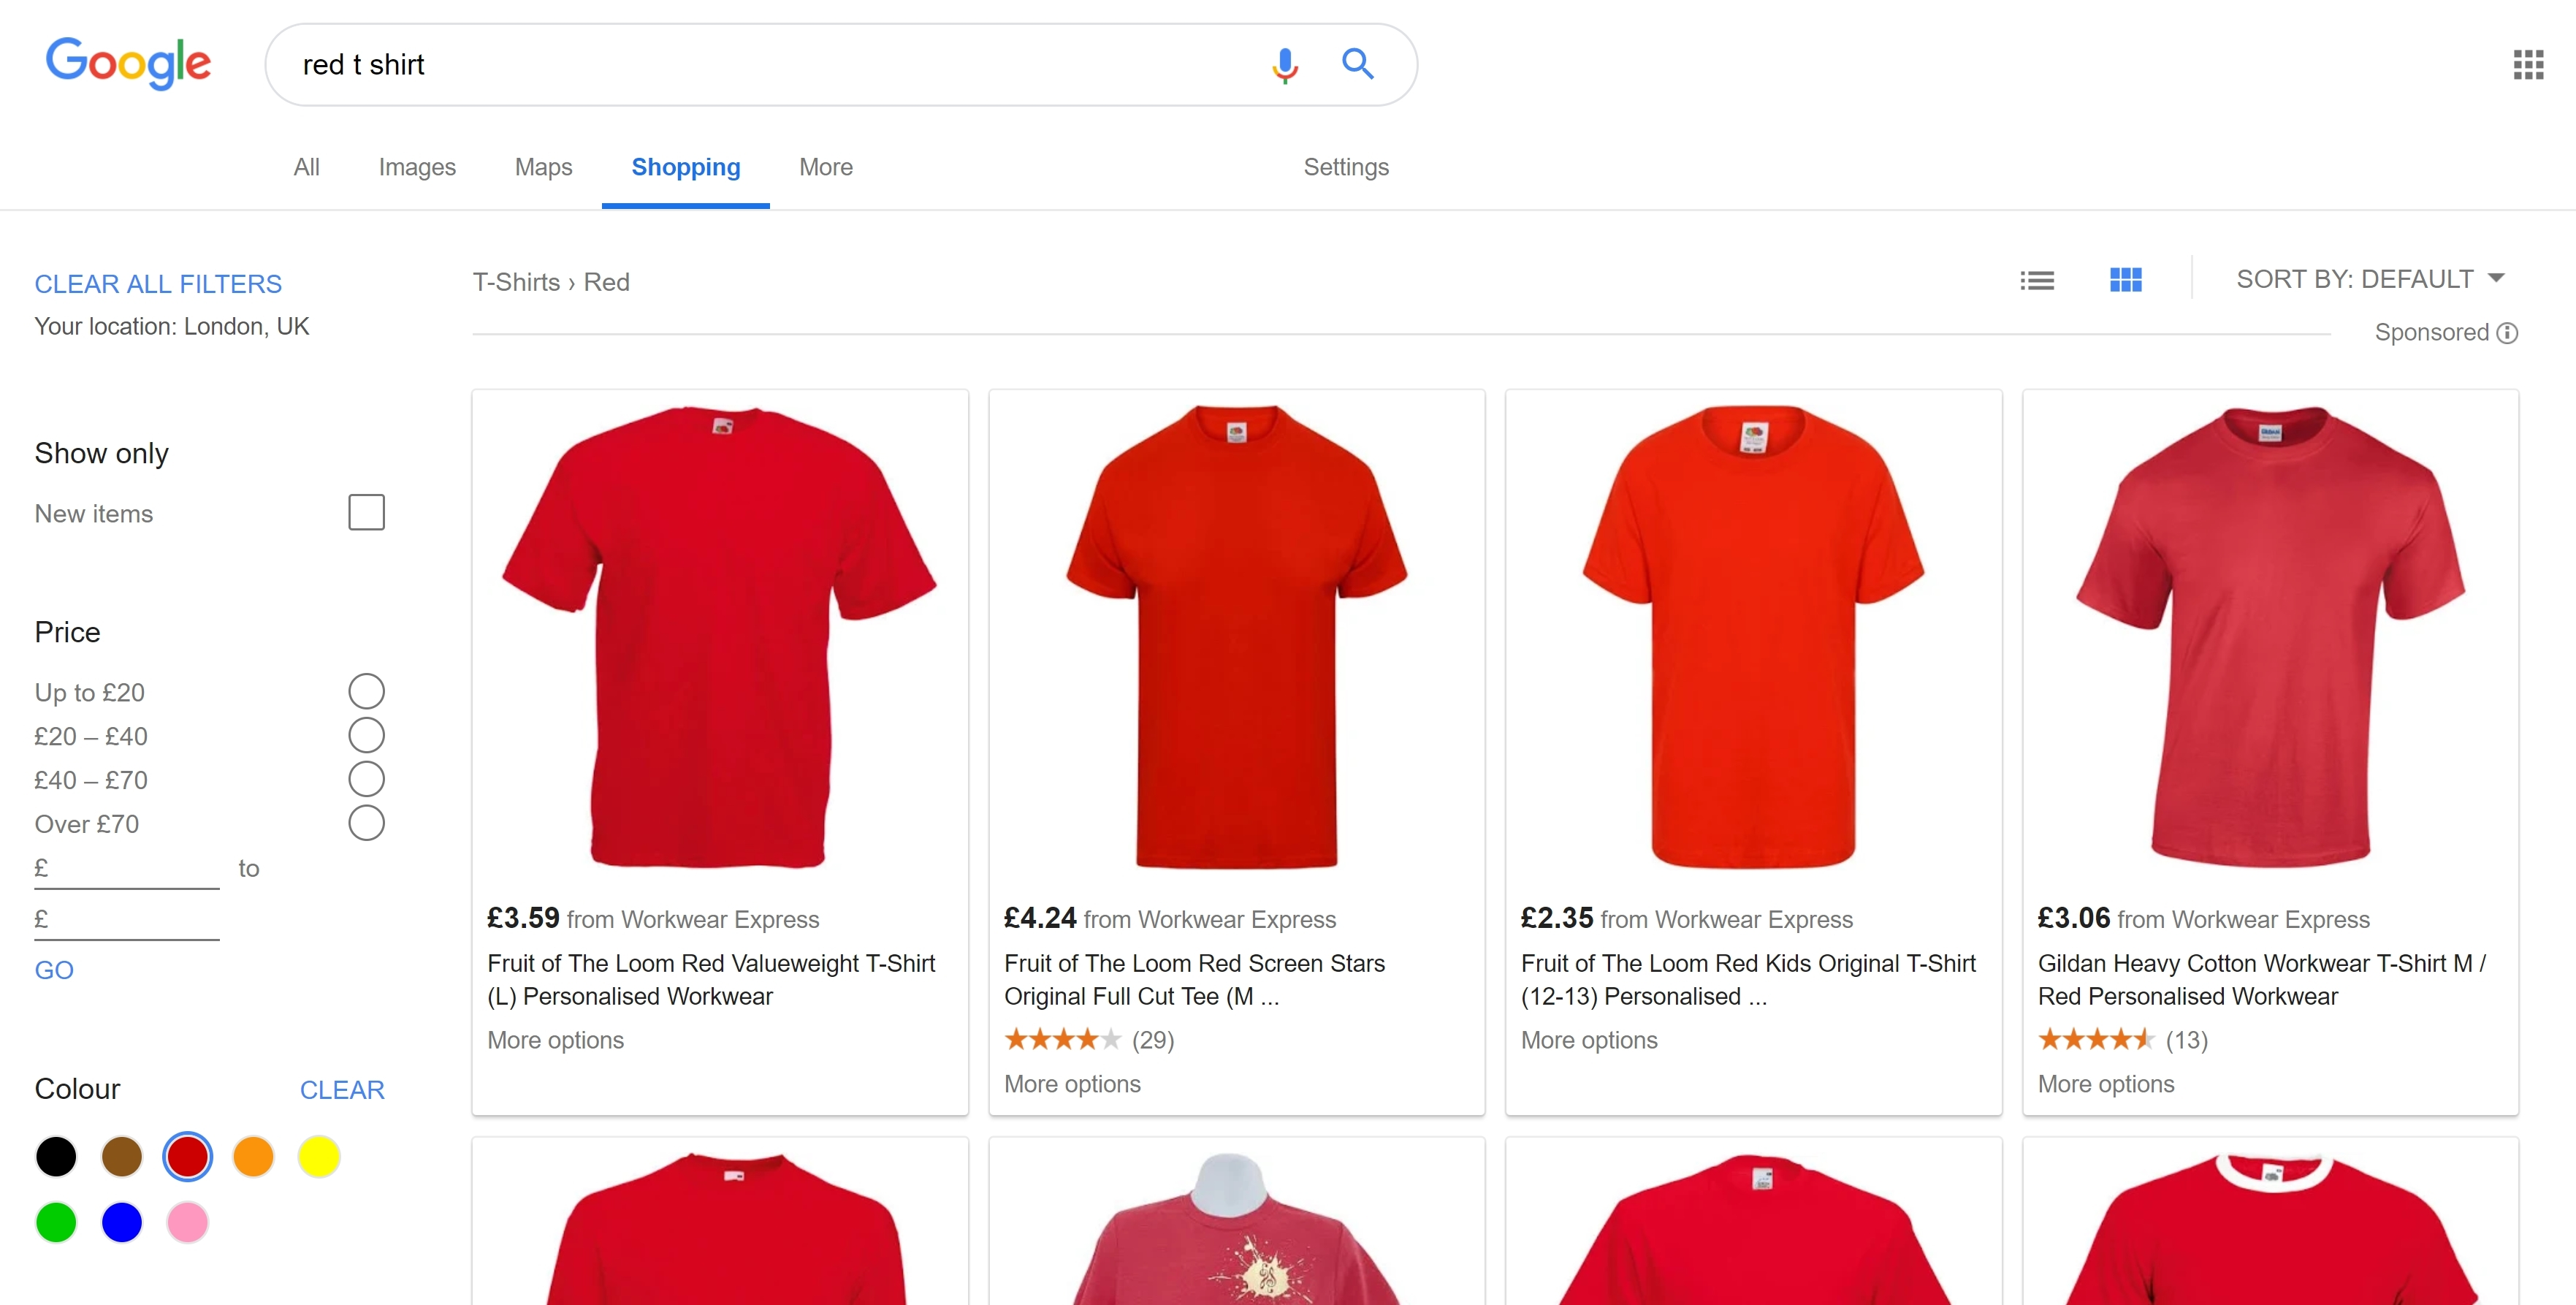 red t shirt search + red filter = different results